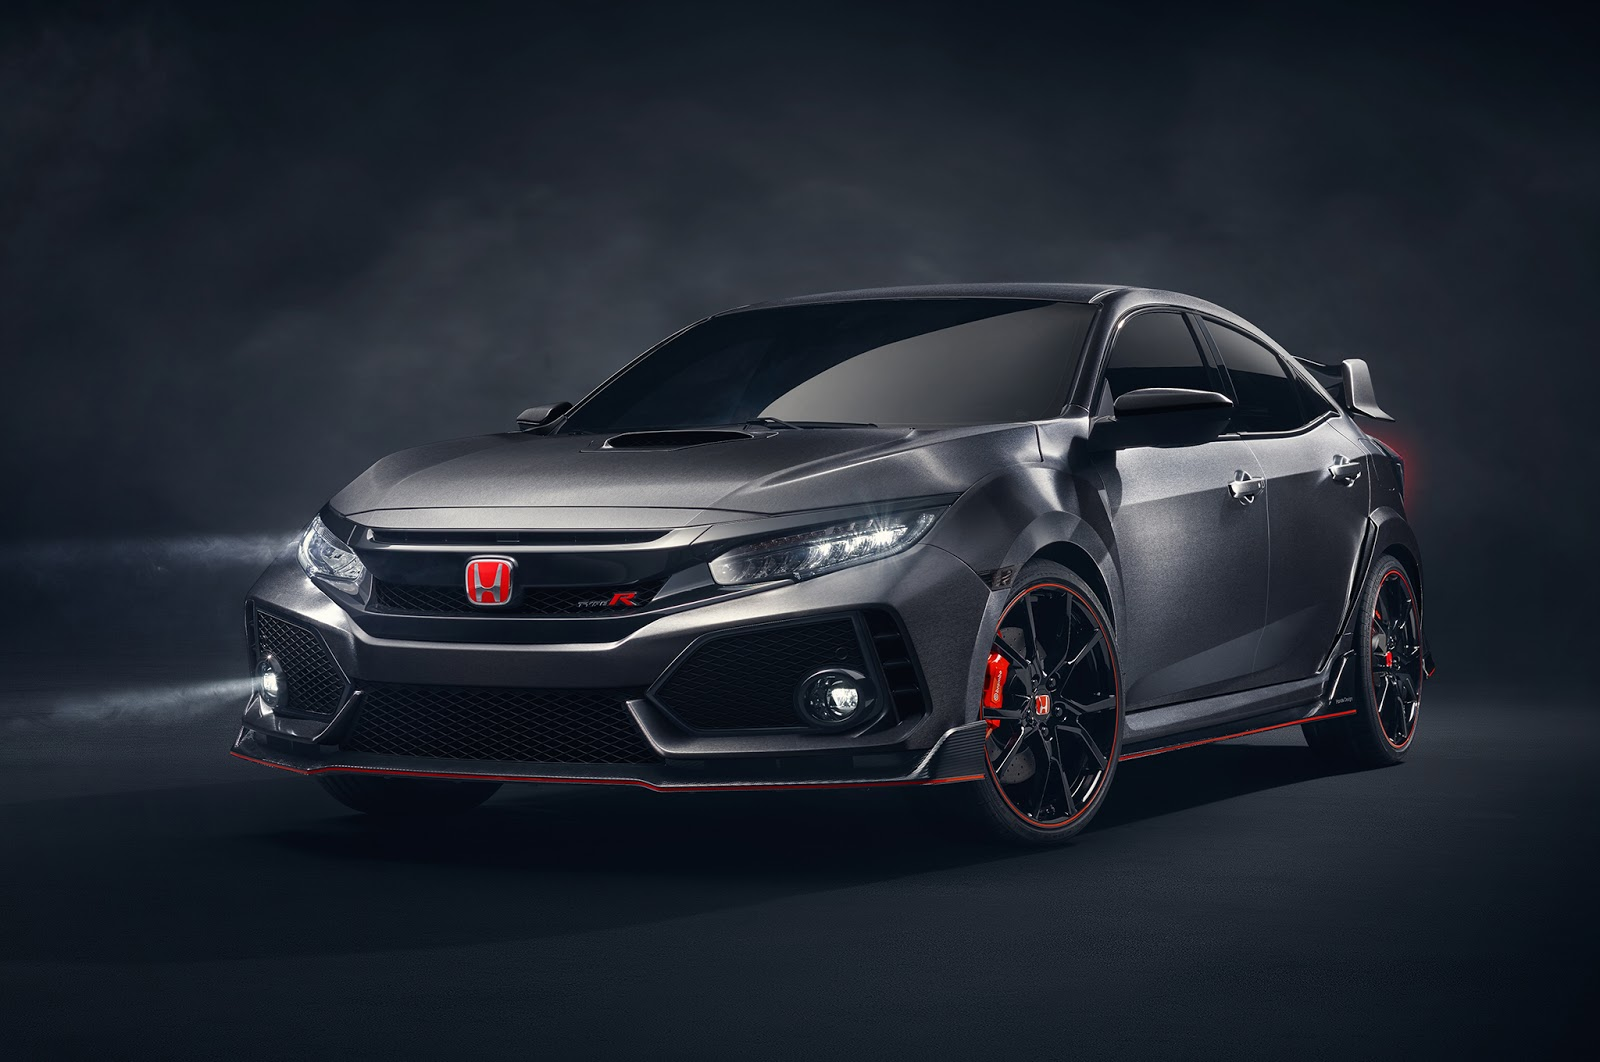 Honda Civic Type R Production Model To Debut In Geneva Forcegt Com